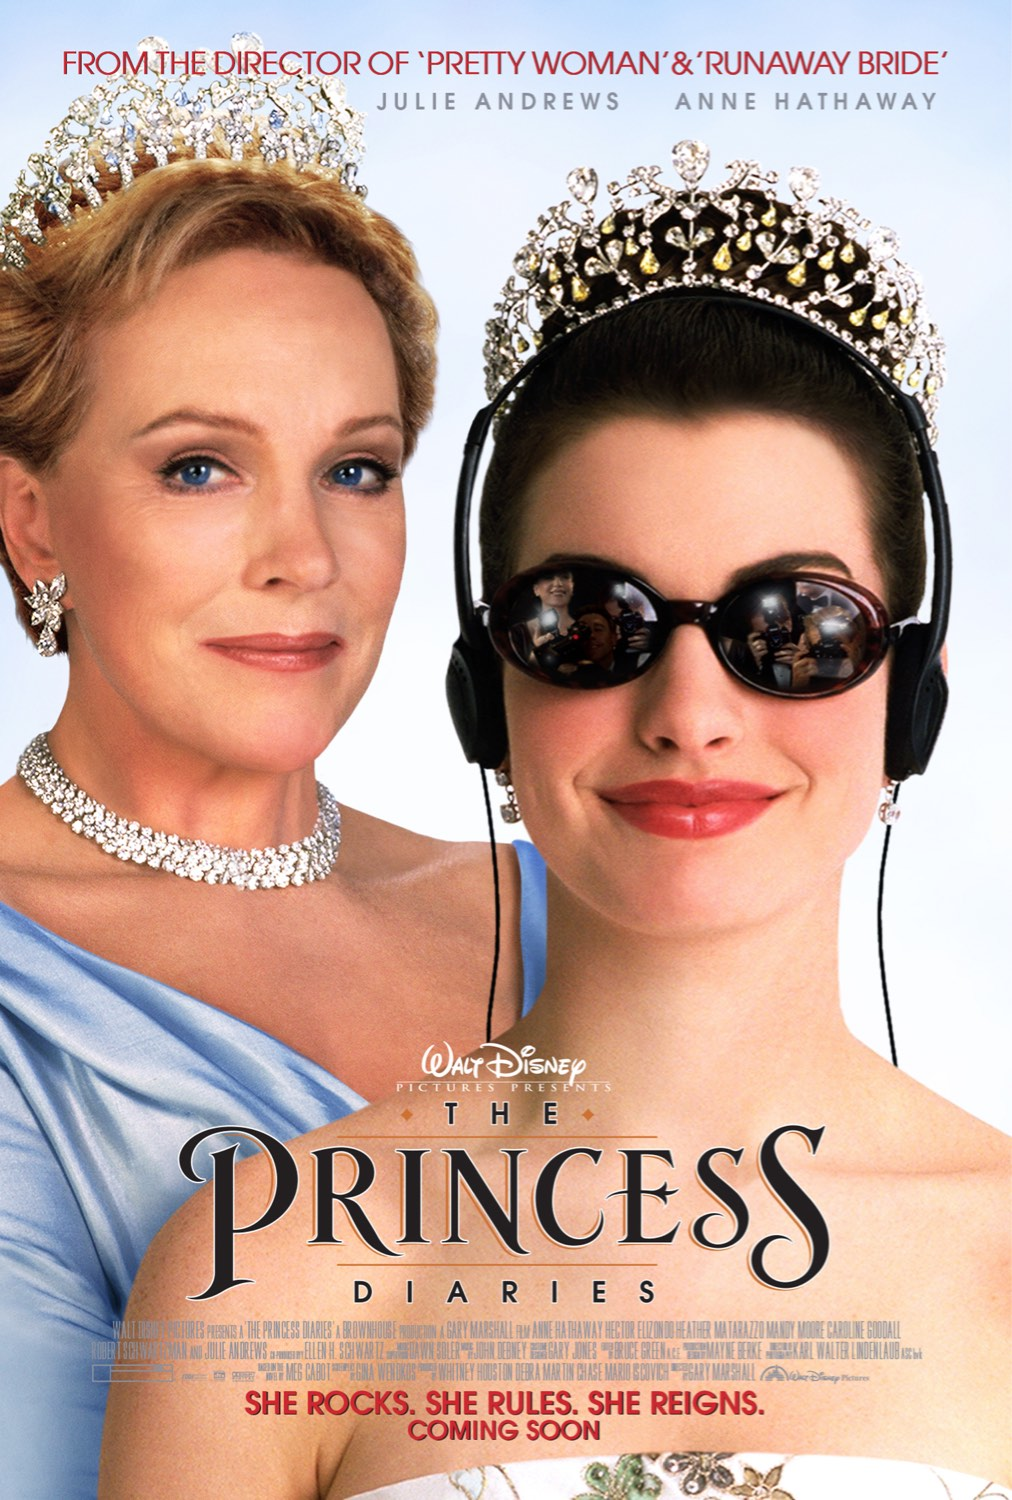 THE PRINCESS DIARIES 1.jpg